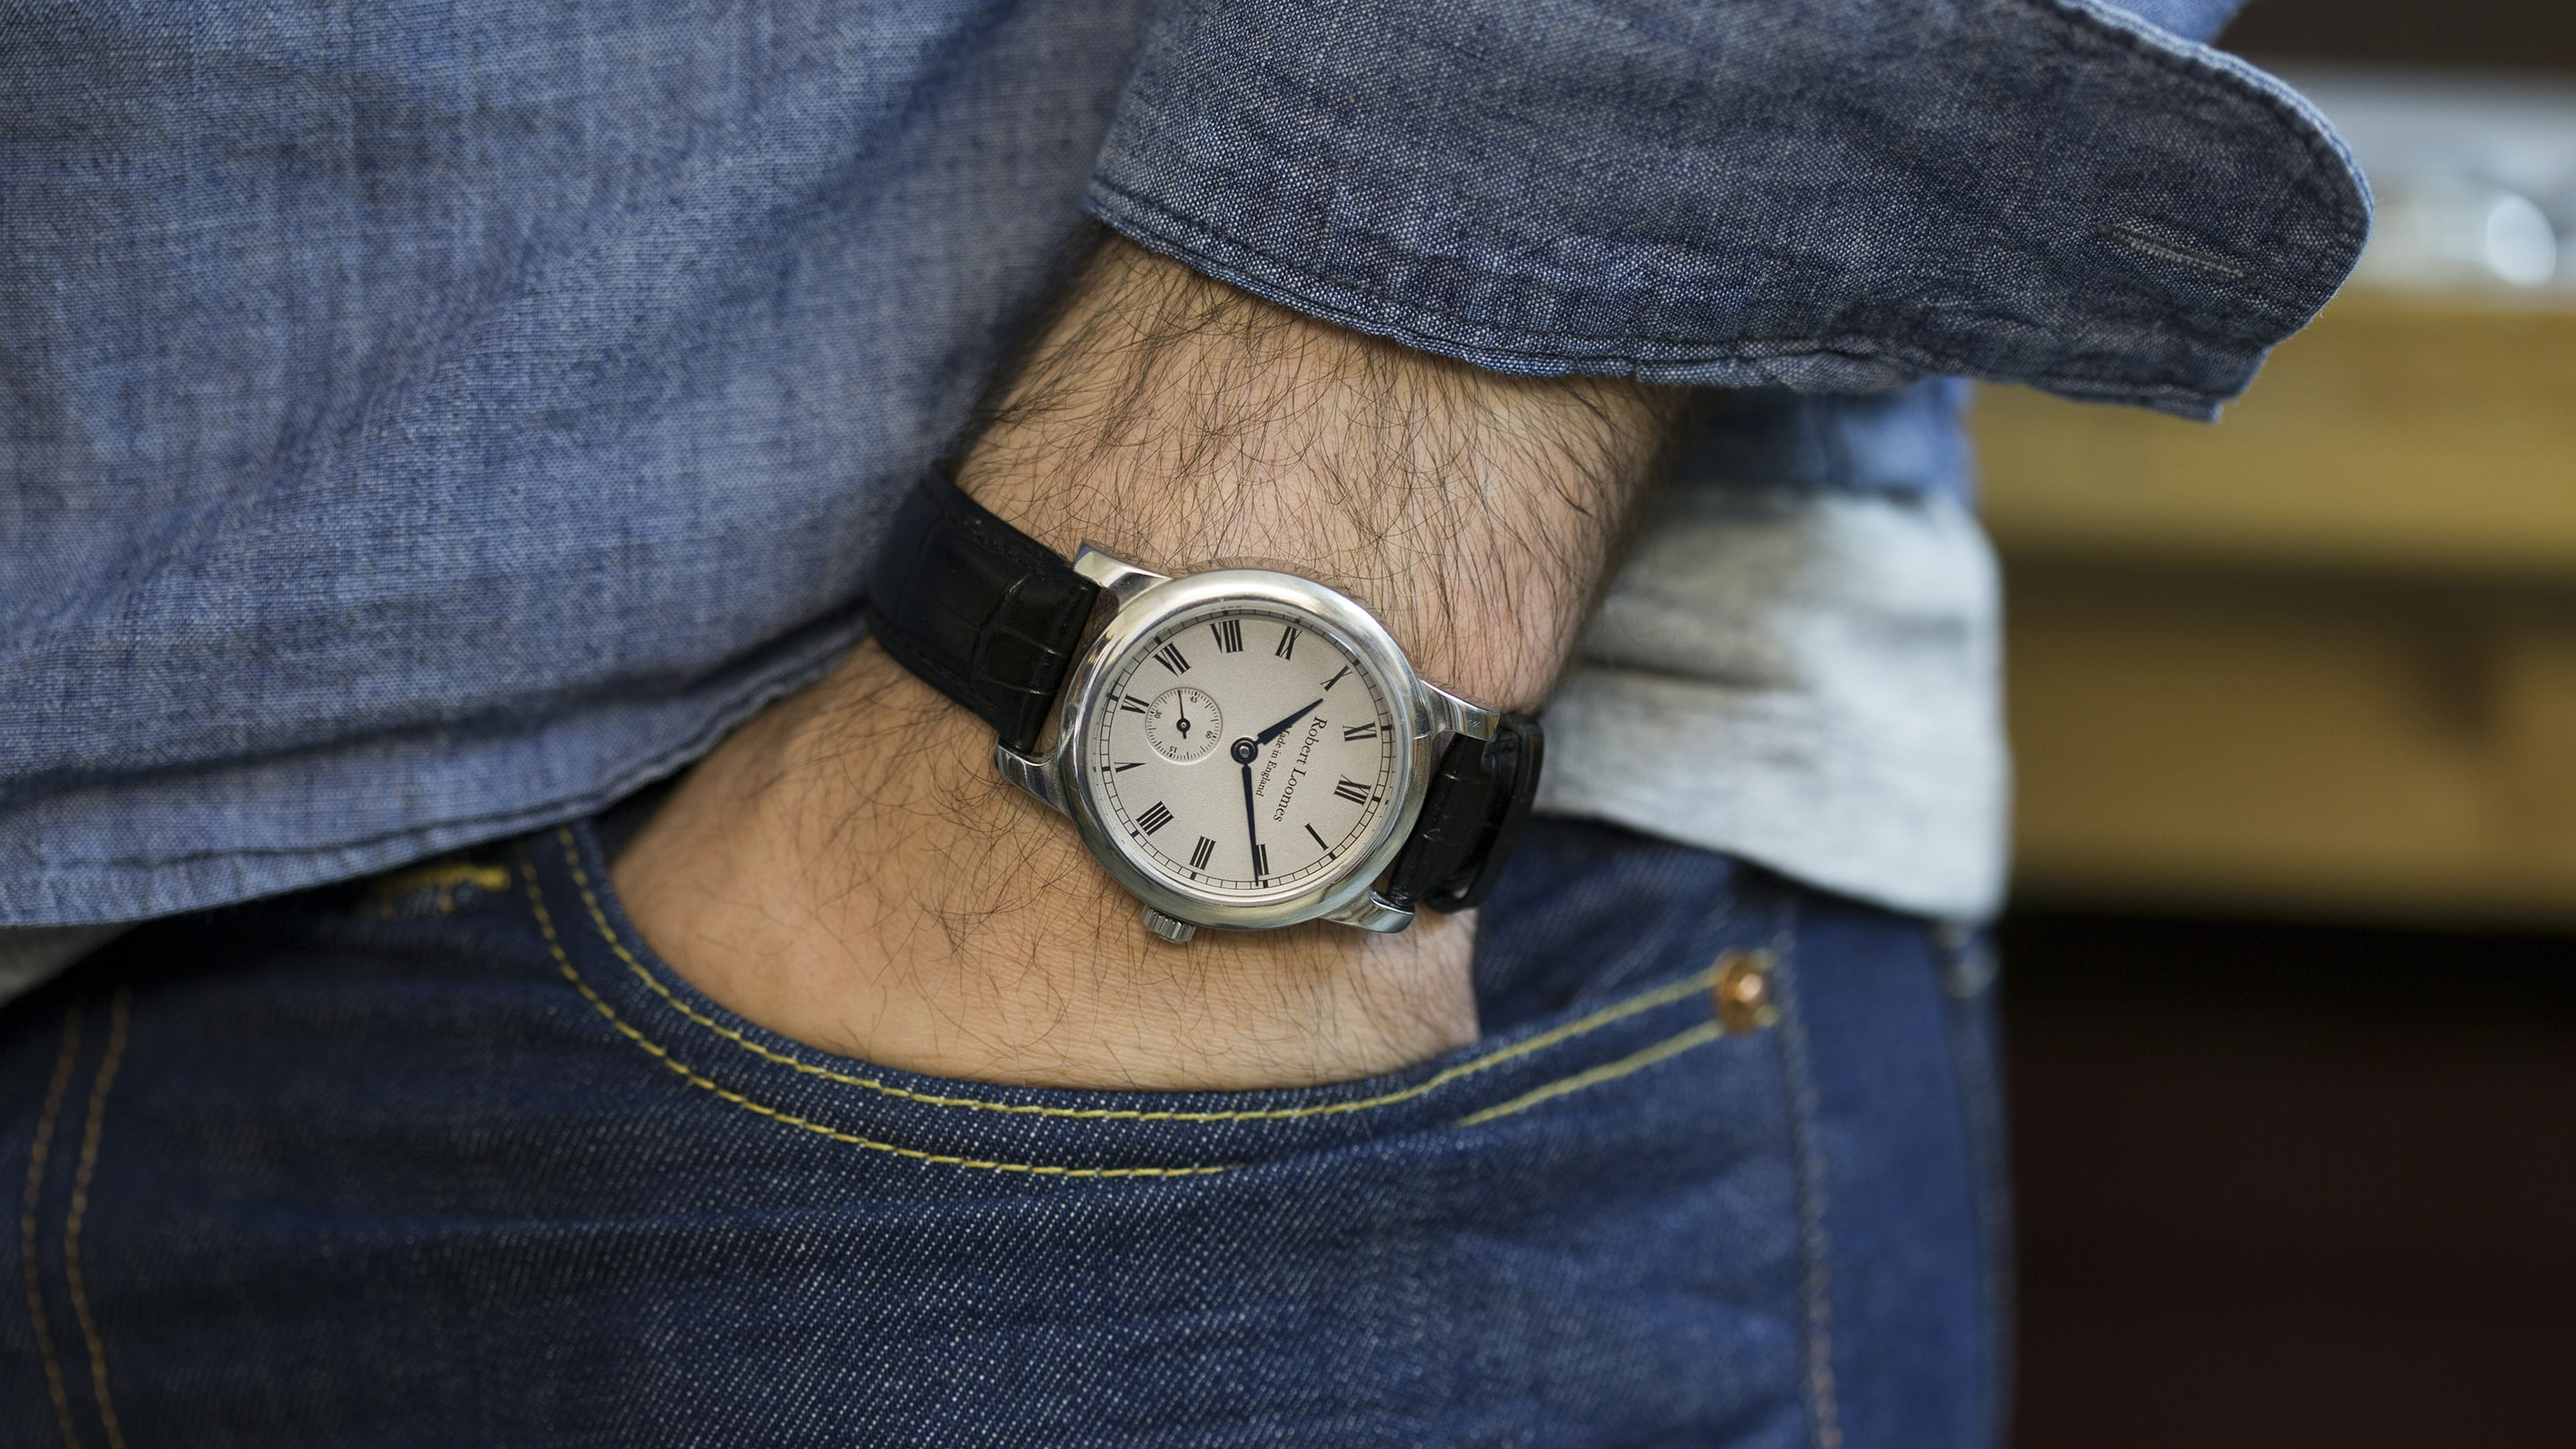 The HODINKEE 2016 Video Year In Review The HODINKEE 2016 Video Year In Review 13